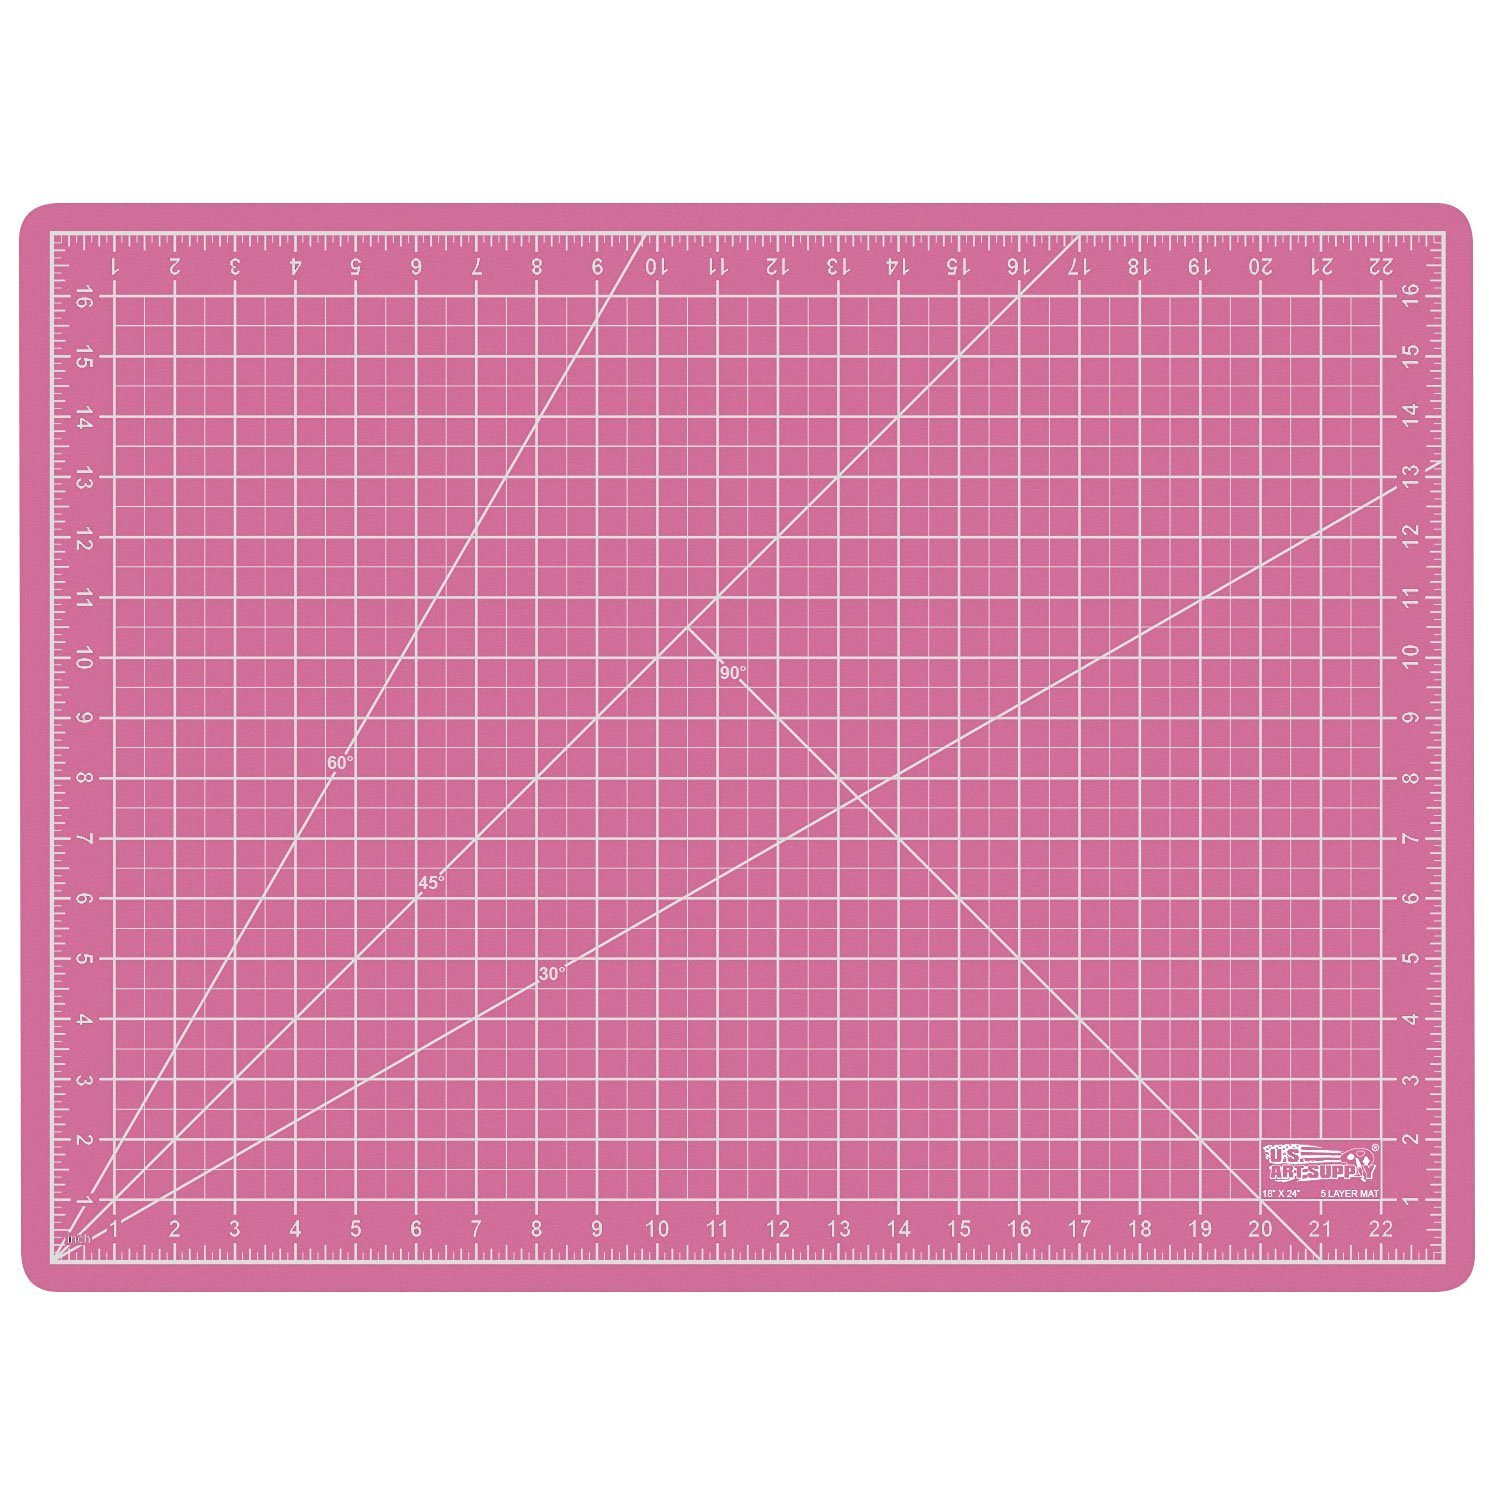 US Art Supply 18'' x 24'' PINK/BLUE Professional Self Healing 5-Ply Double Sided Durable Non-Slip PVC Cutting Mat Great for Scrapbooking, Quilting, Sewing and all Arts & Crafts Projects